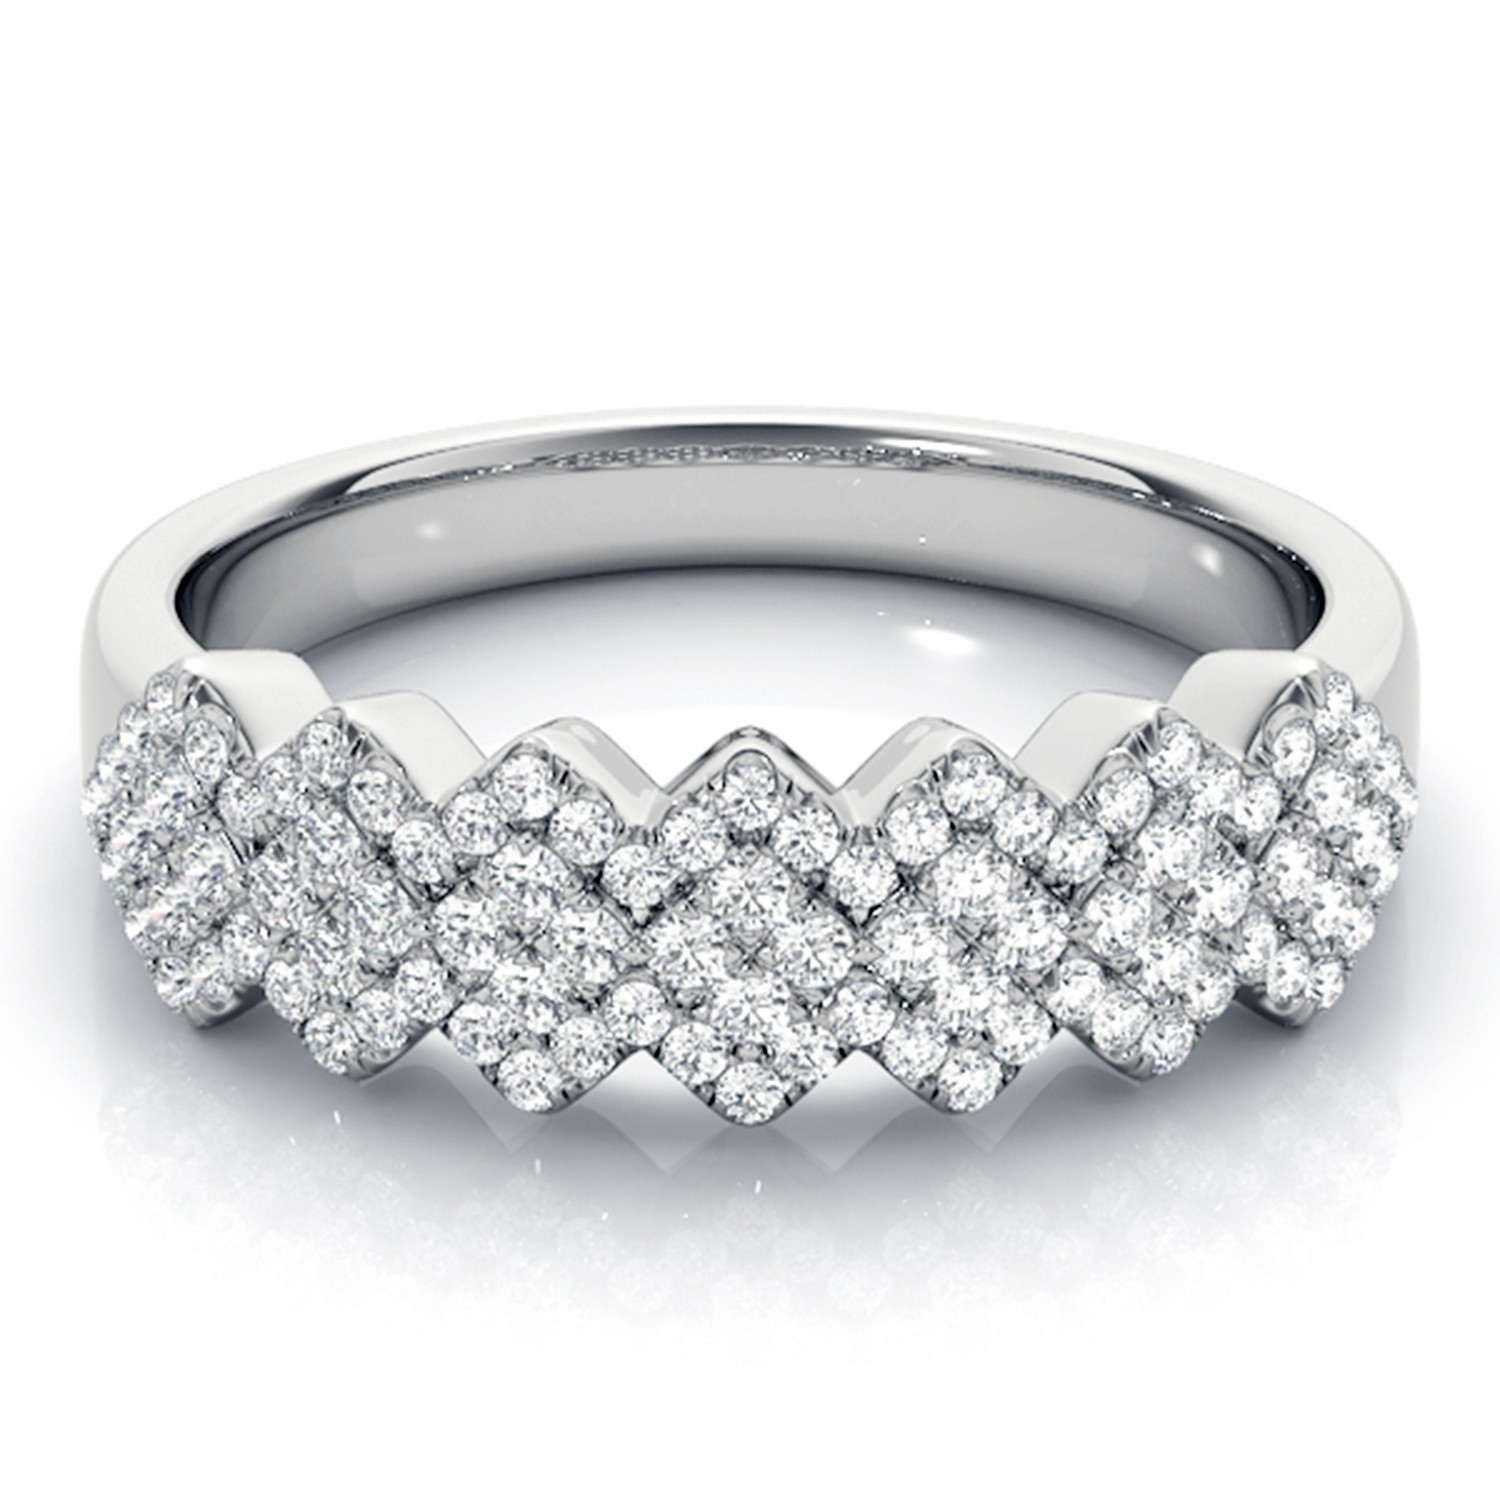 Zigzag 5/8 Ctw Multi Row Diamond Anniversary / Wedding Band In 18K Regarding Recent Diamond Zig Zag Anniversary Rings In 18K White Gold (View 13 of 15)